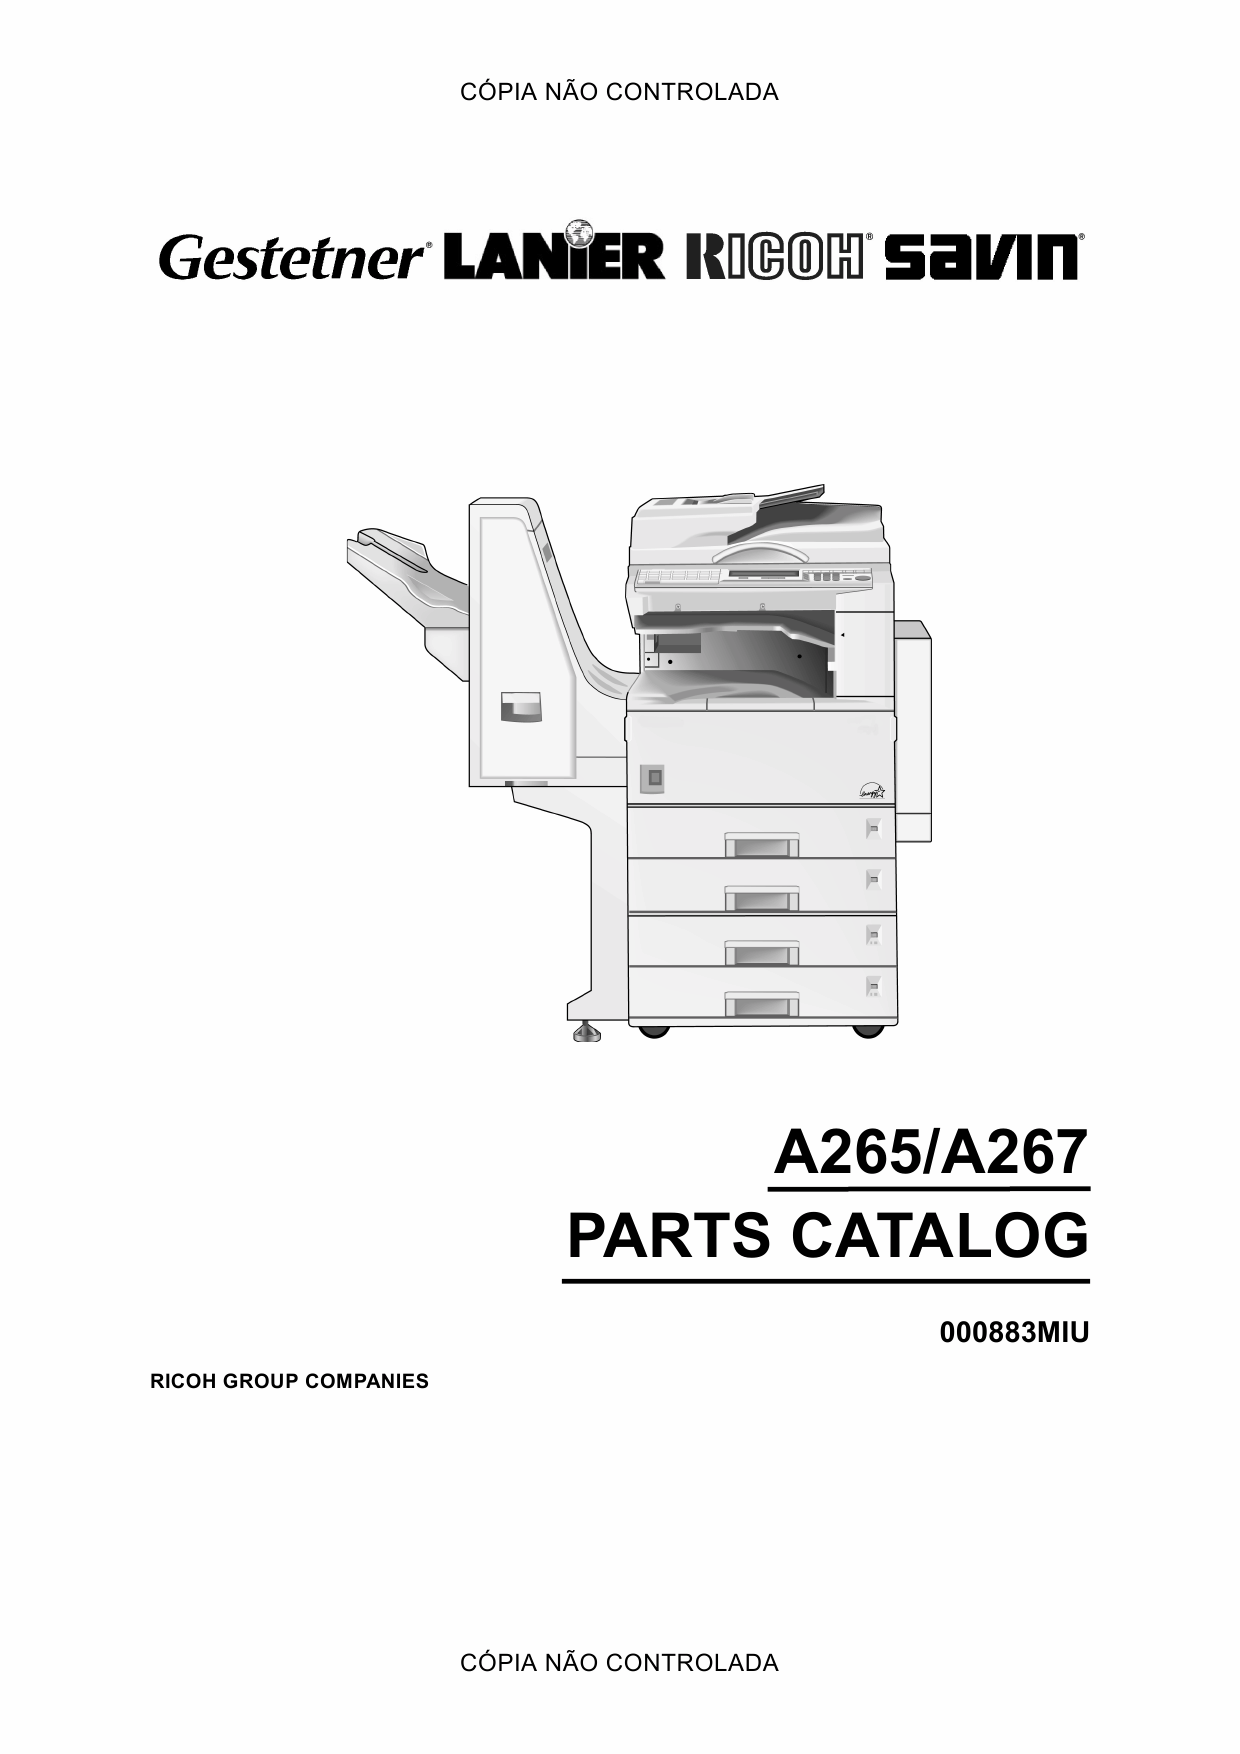 RICOH Aficio 220 270 A265 A267 Parts Catalogl